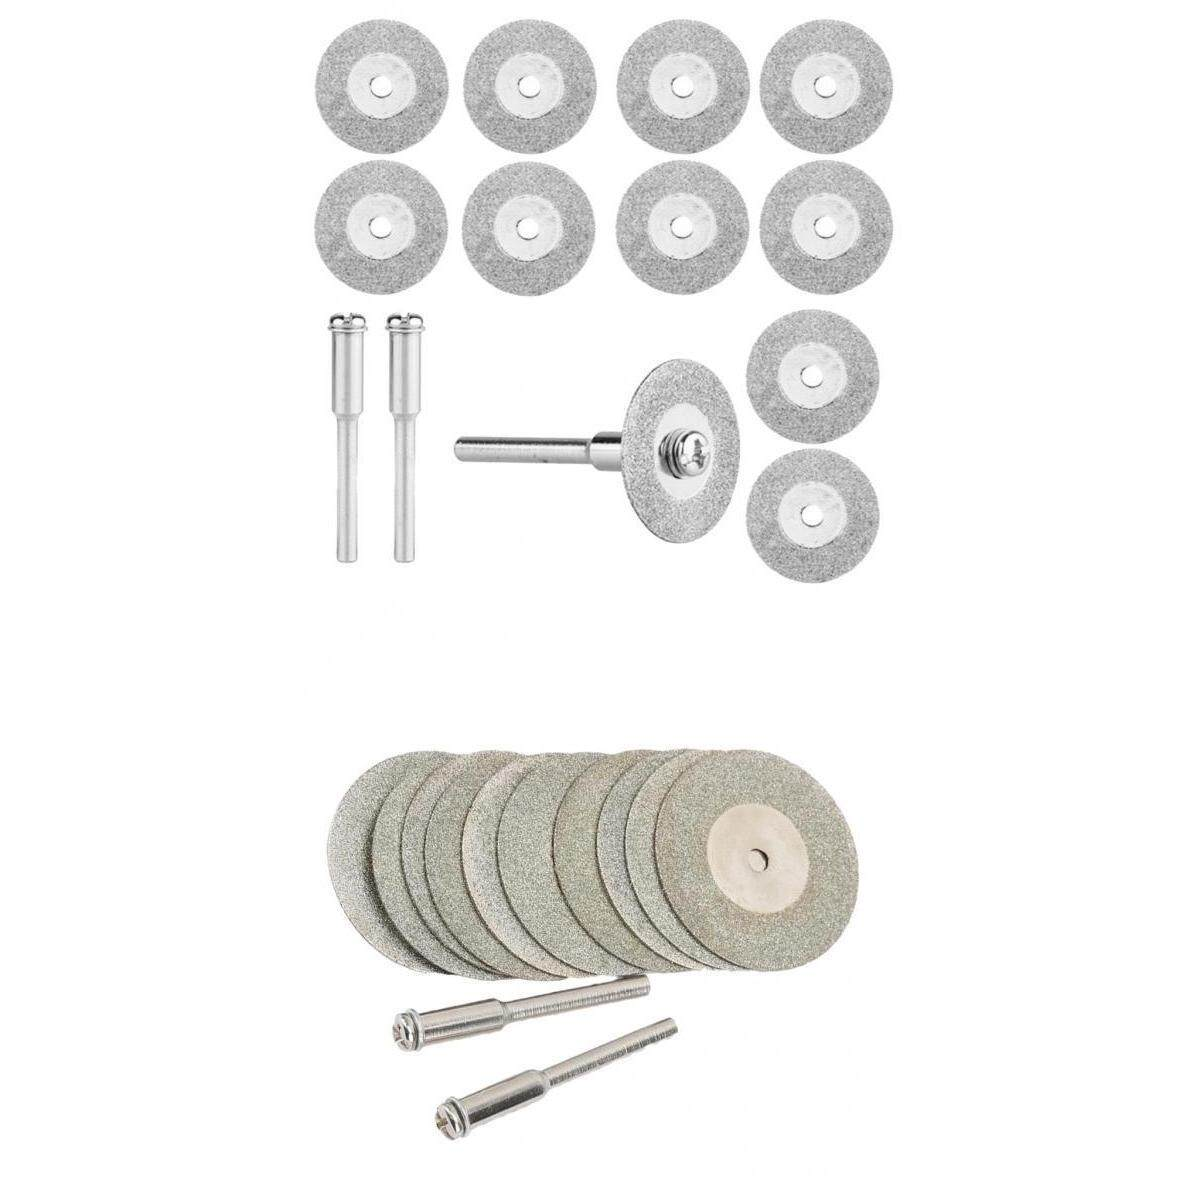 Magideal 20pc Diamond Cutting Discs Cut-Off Wheel With 4pcs 1/8 Mandrel 30mm & 20mm By Magideal.